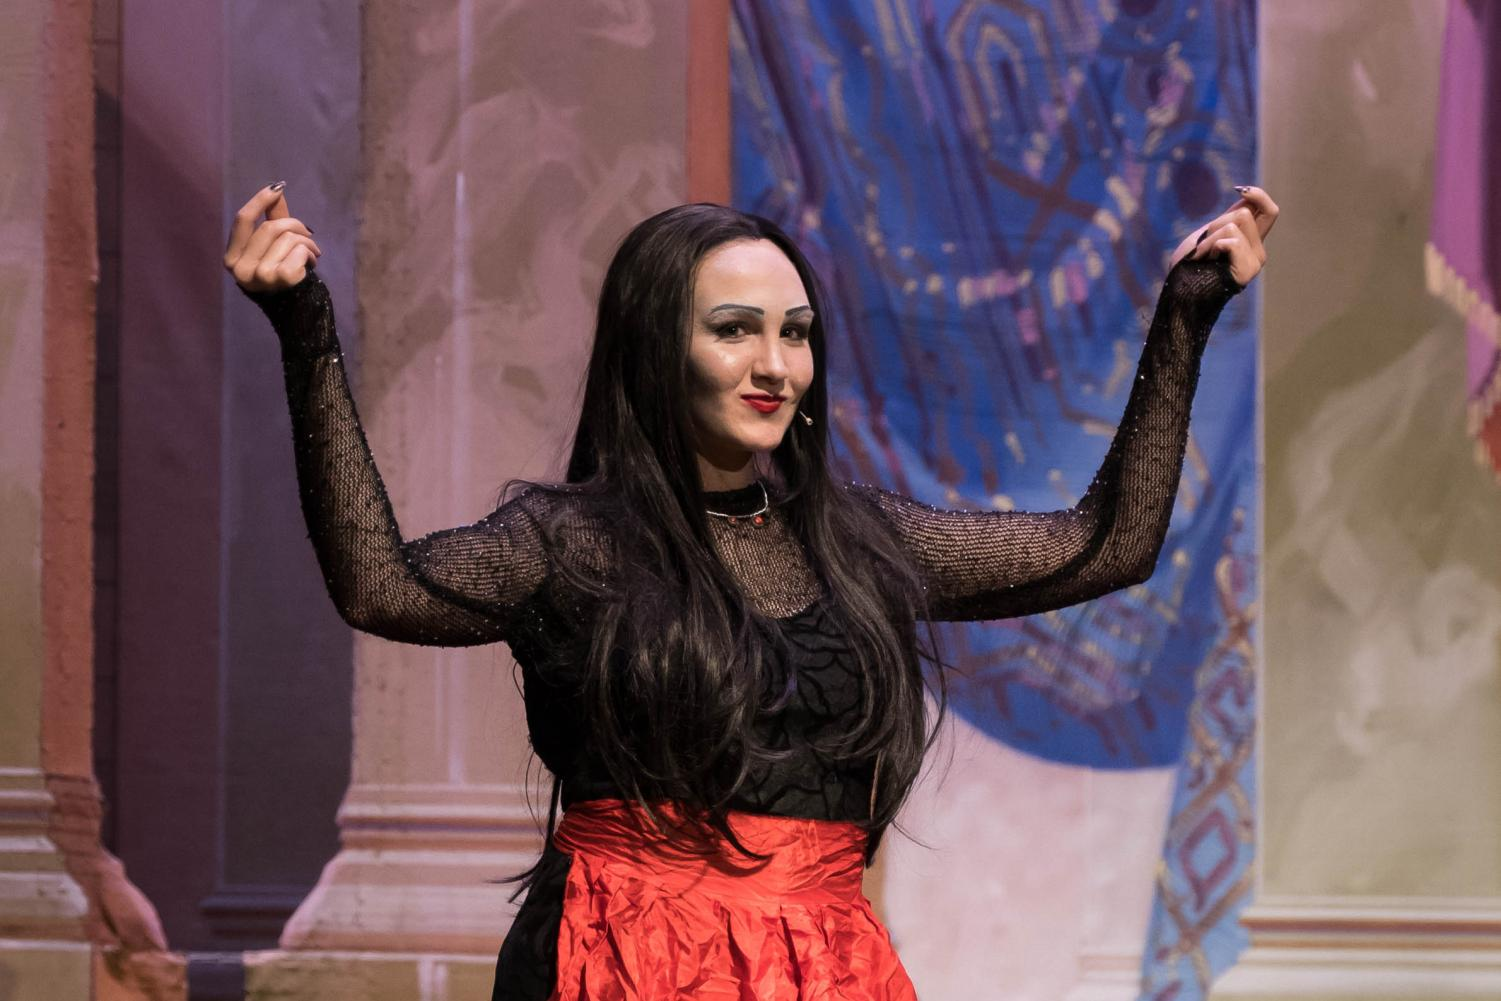 Madi Laughlin (Sophomore in Engineering Technology) plays the role of Morticia Addams in Wichita Signature Theatre's The Addams Family musical.